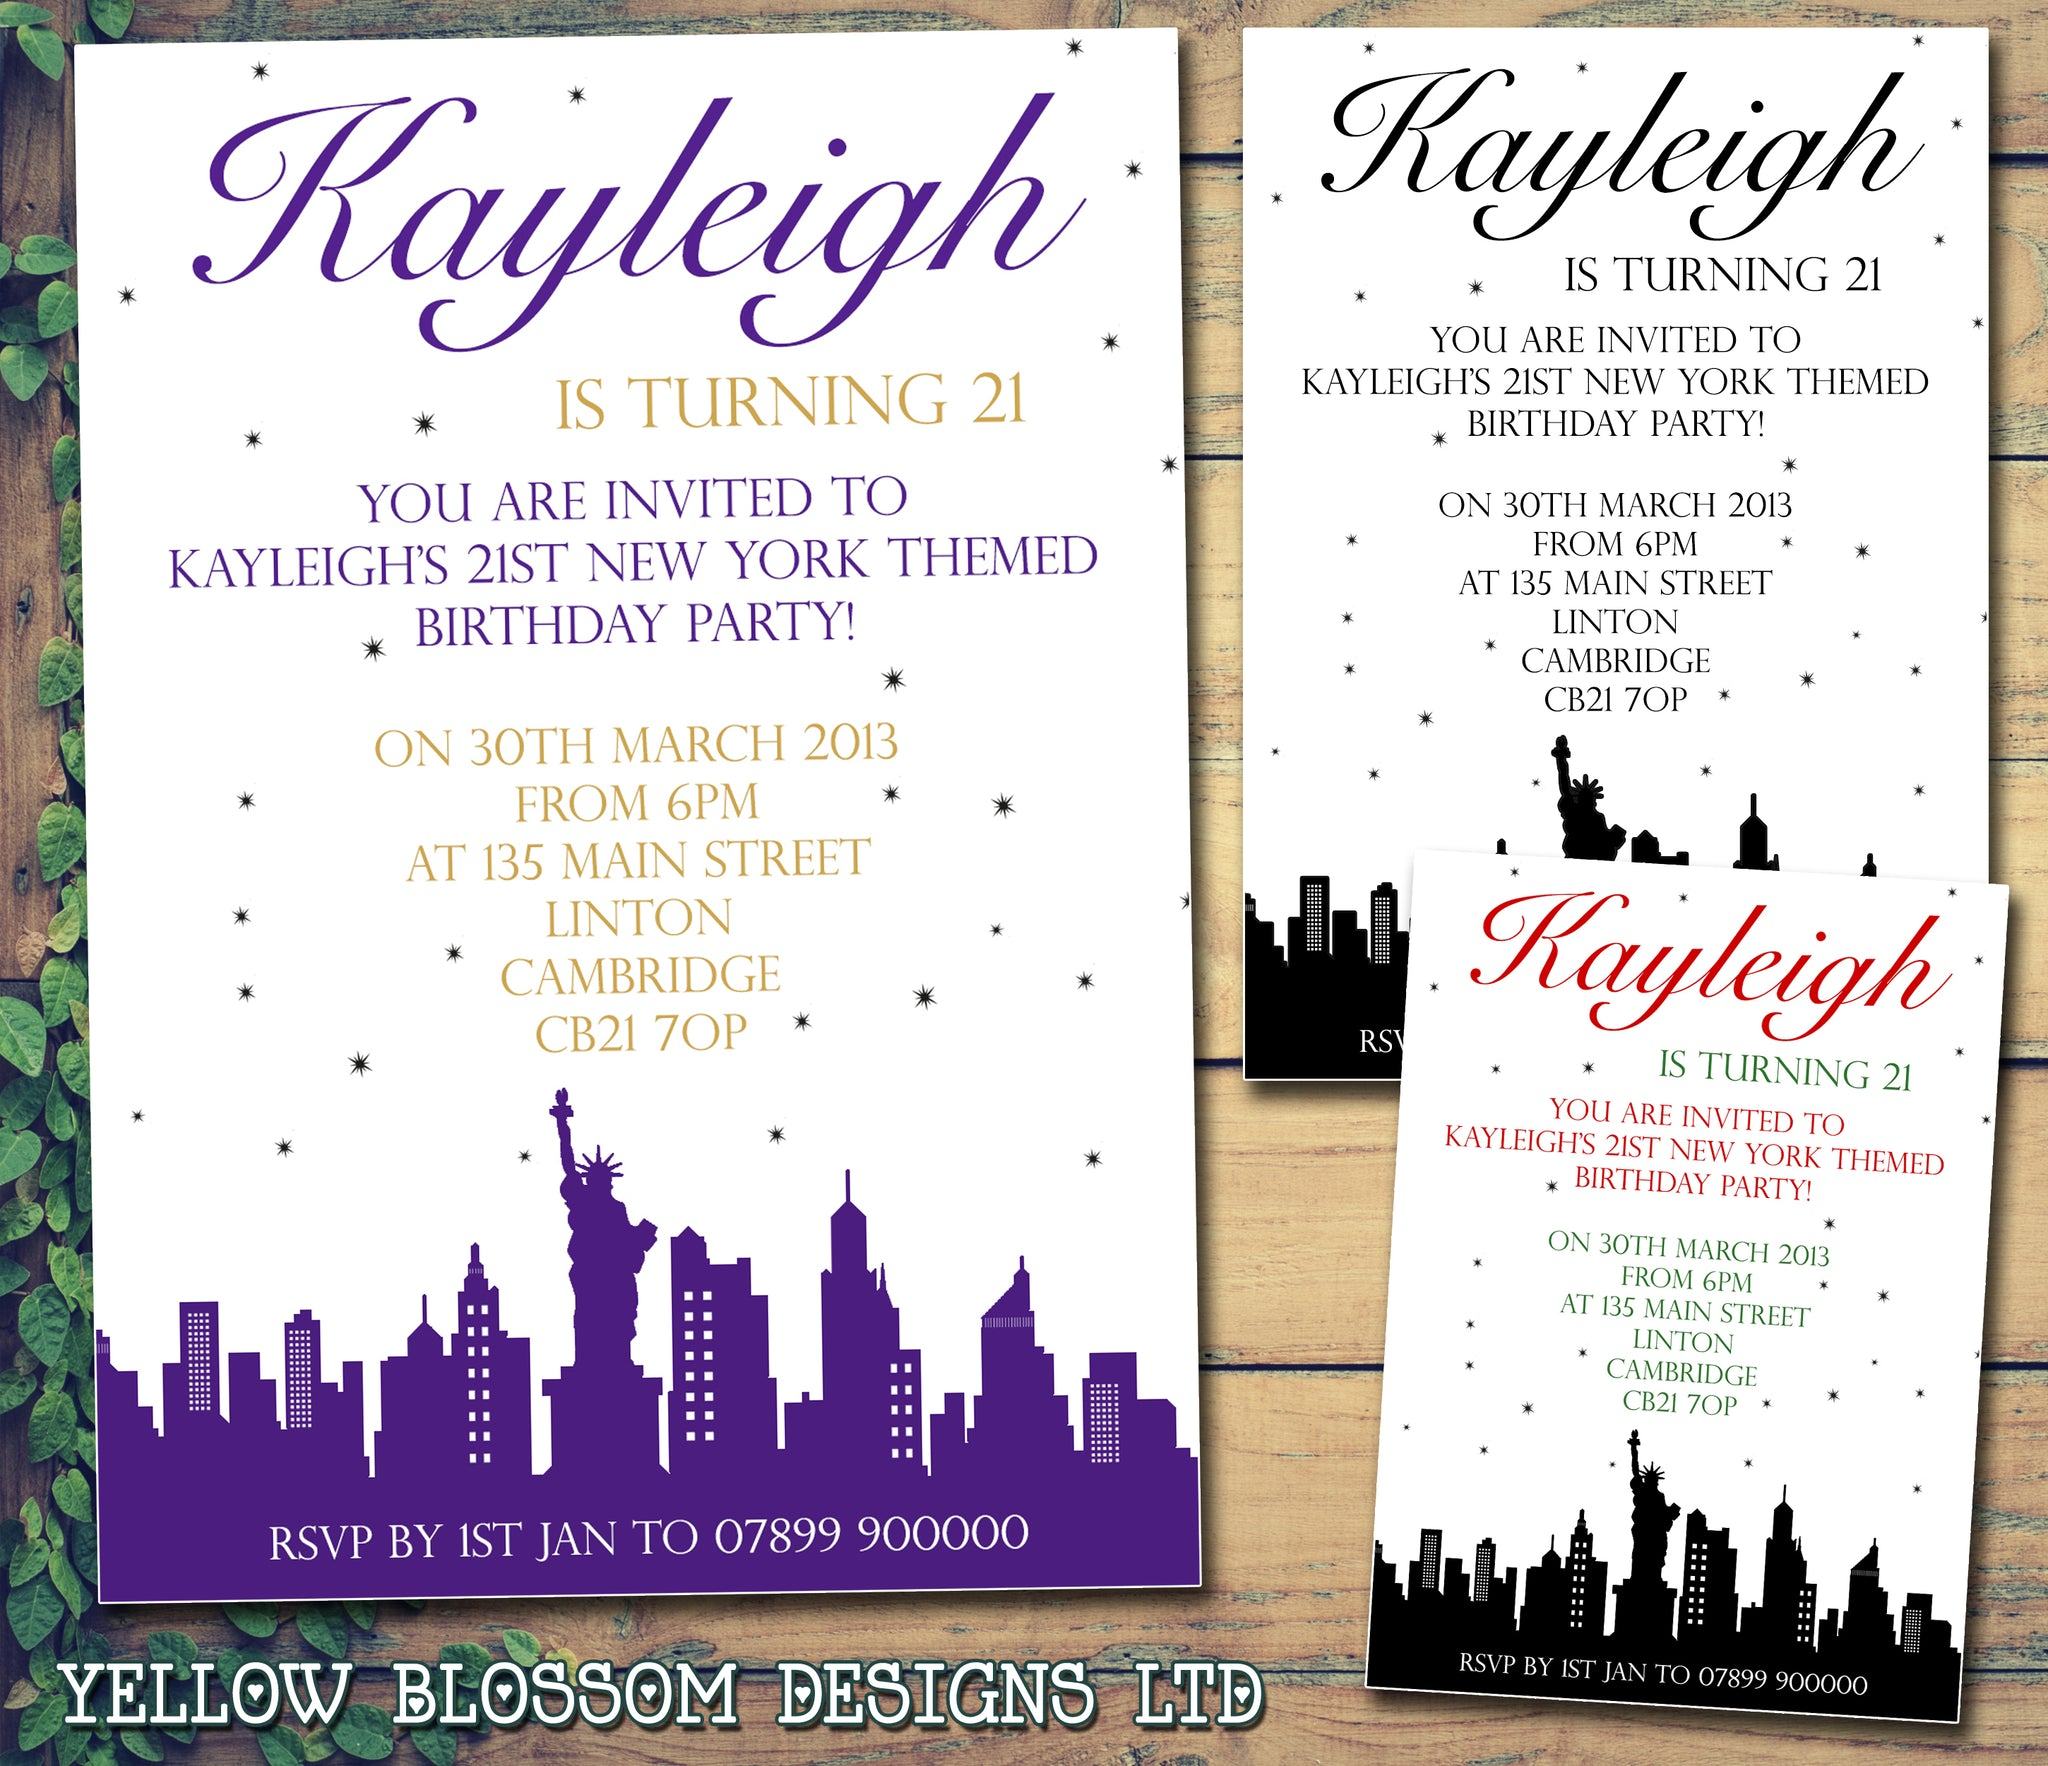 Personalised Birthday Invitations Female Male Unisex Joint 18th 21st 30th 40th 50th 60th New York Skyline